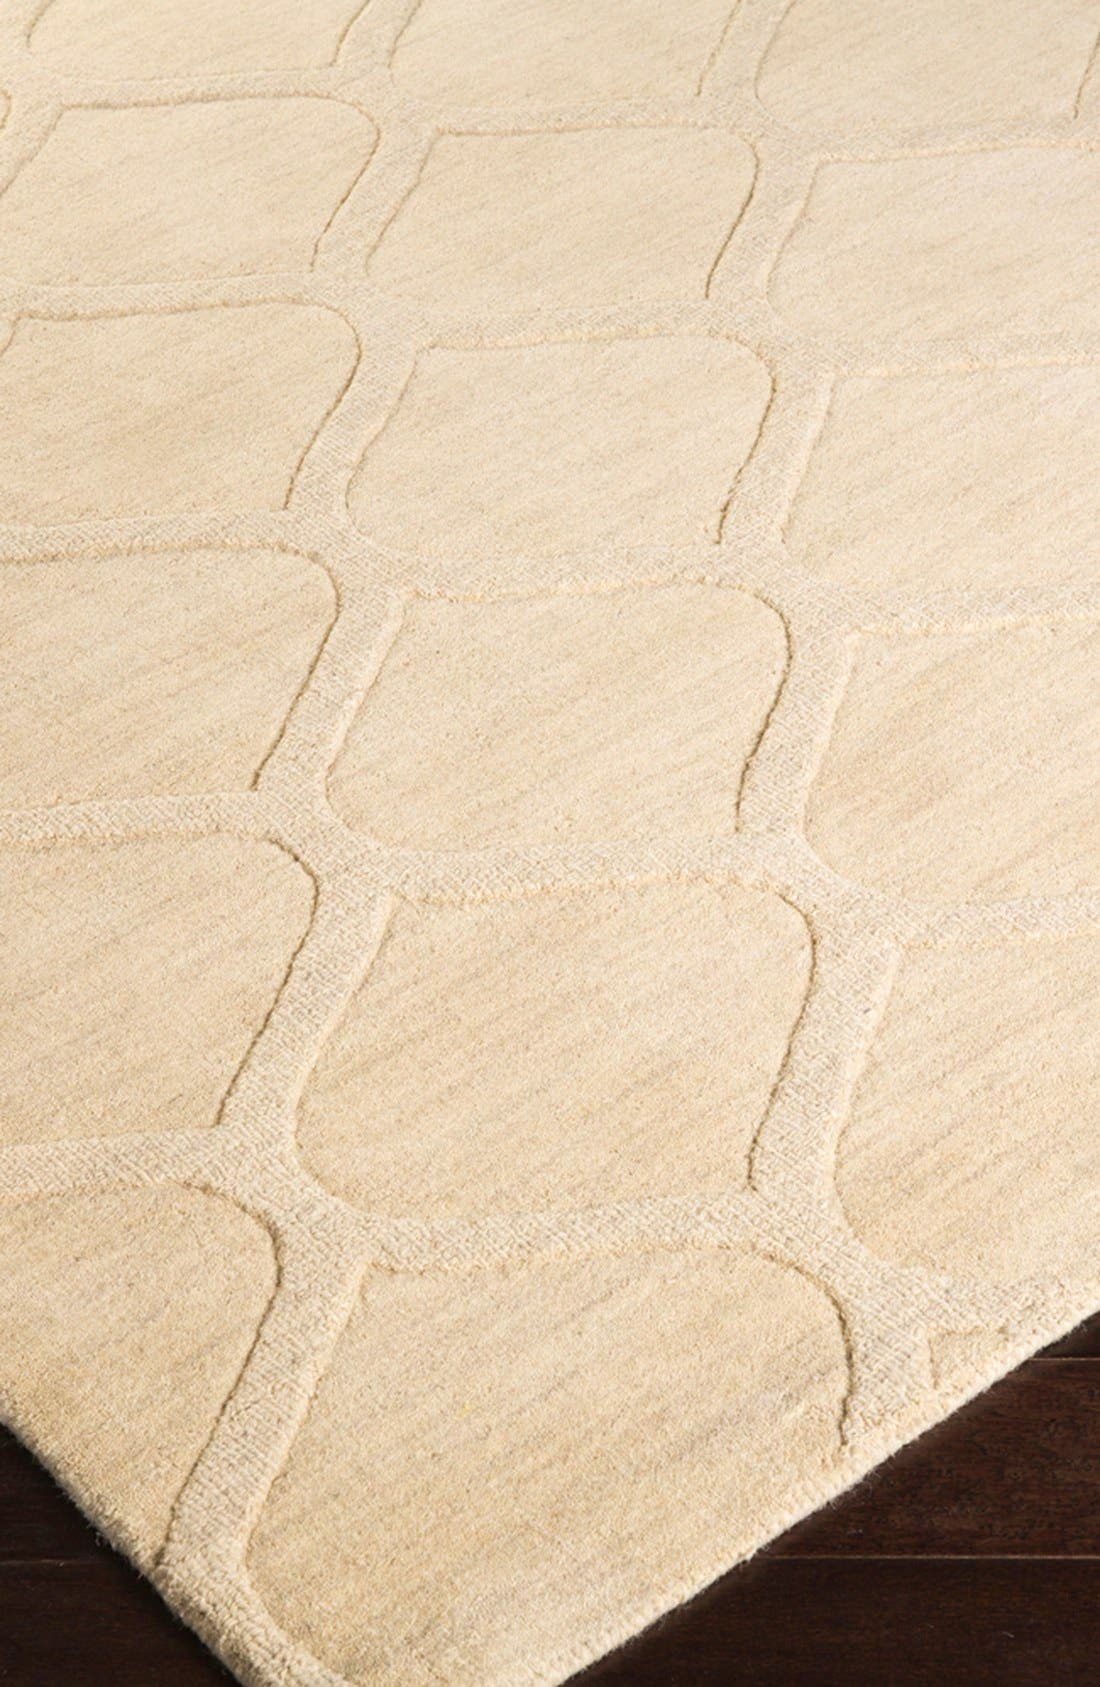 'Mystique' Hand Loomed Wool Rug,                             Alternate thumbnail 2, color,                             IVORY